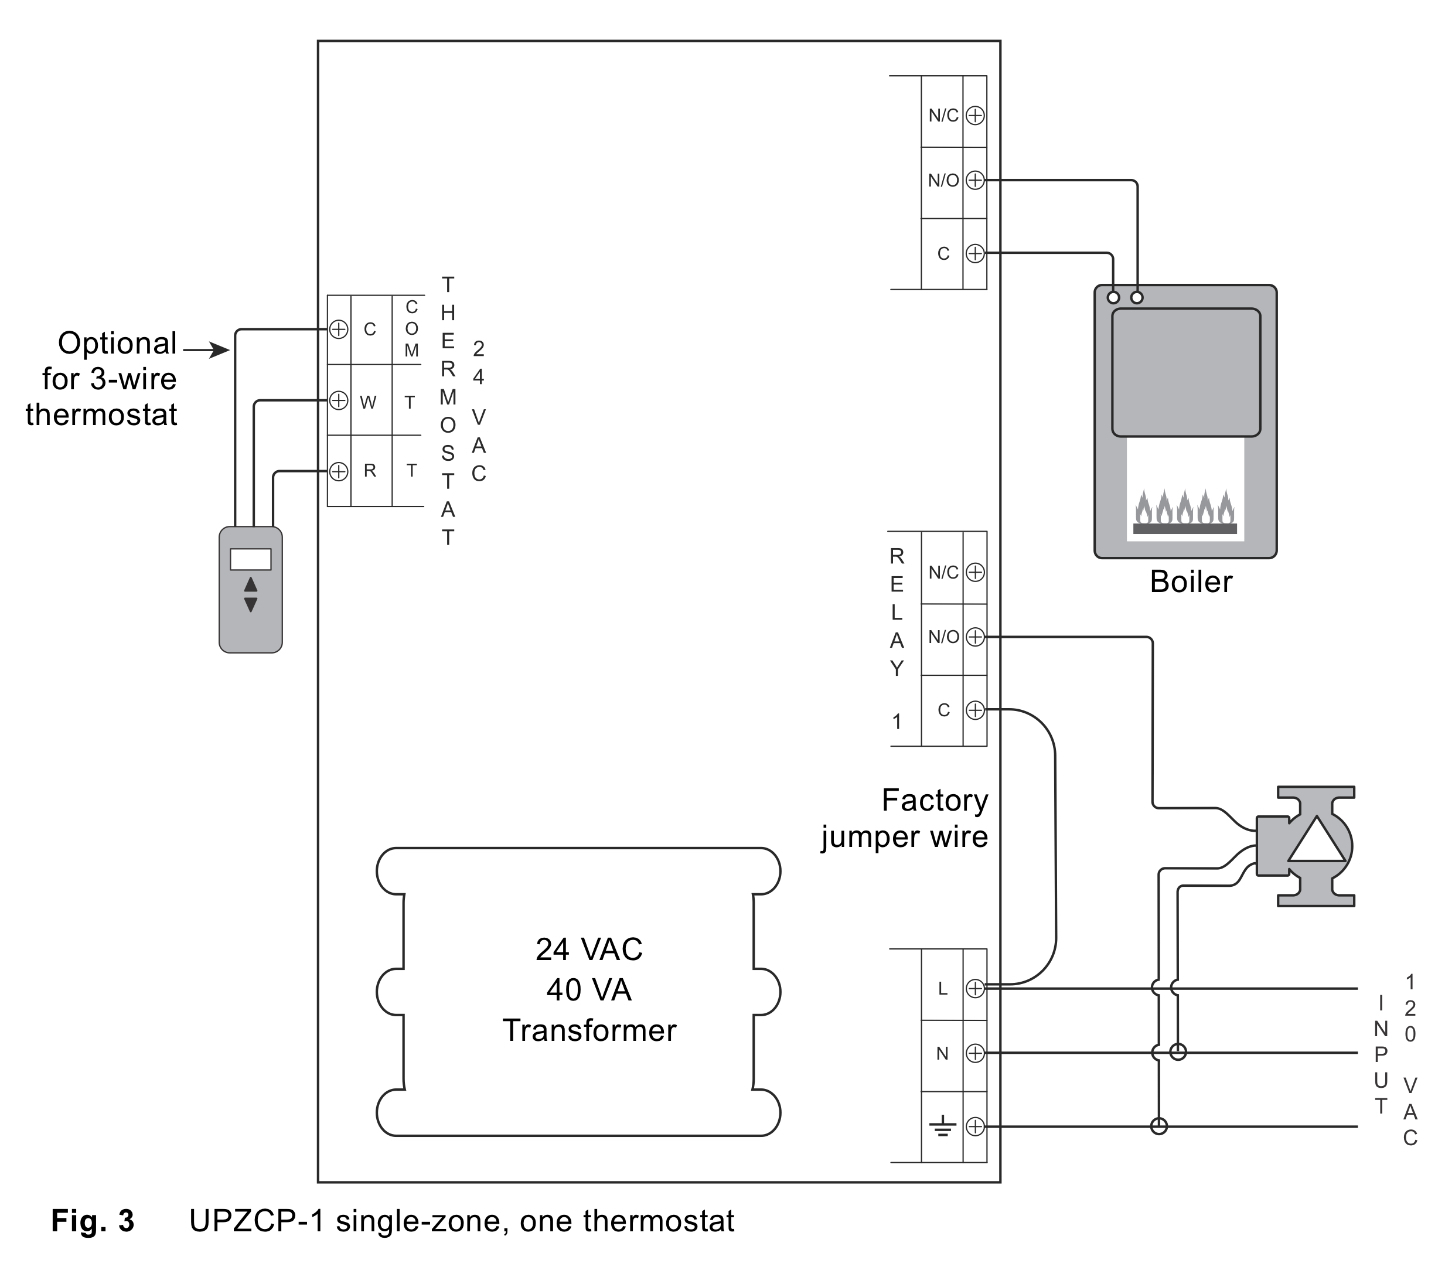 add a phase wiring diagram Download-Also included here is the wiring schematic for the relay I m particularly concerned about having two transformers in the same system 8-f